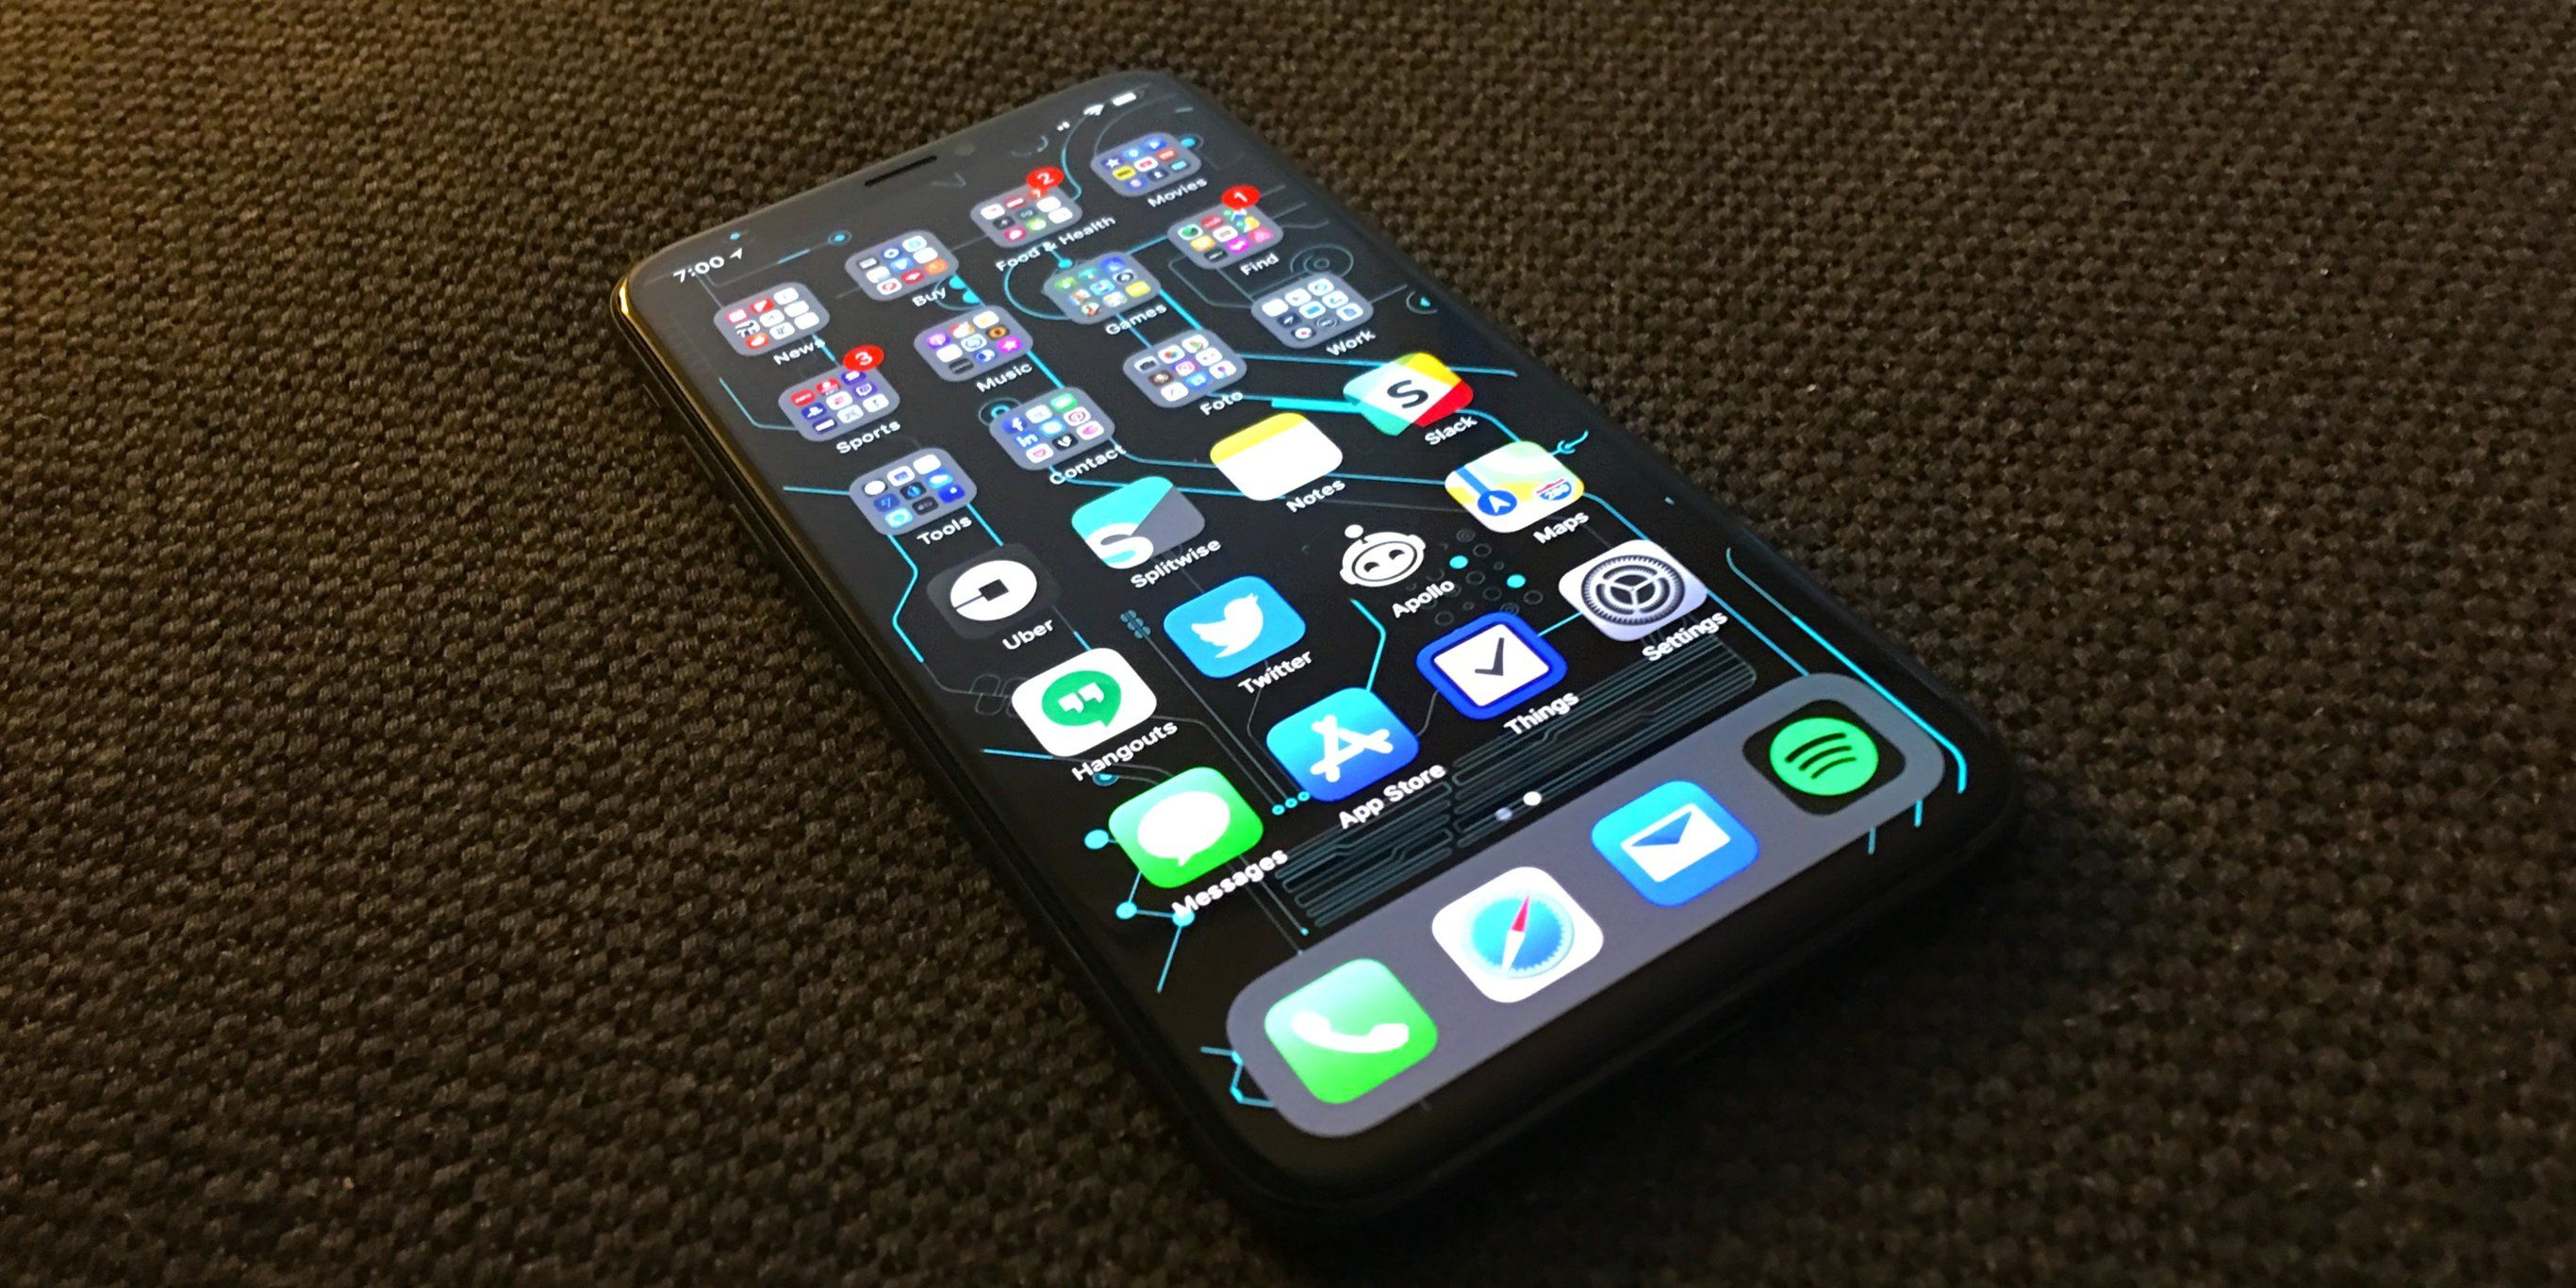 I keep over 200 apps on my iPhone — here's the system I